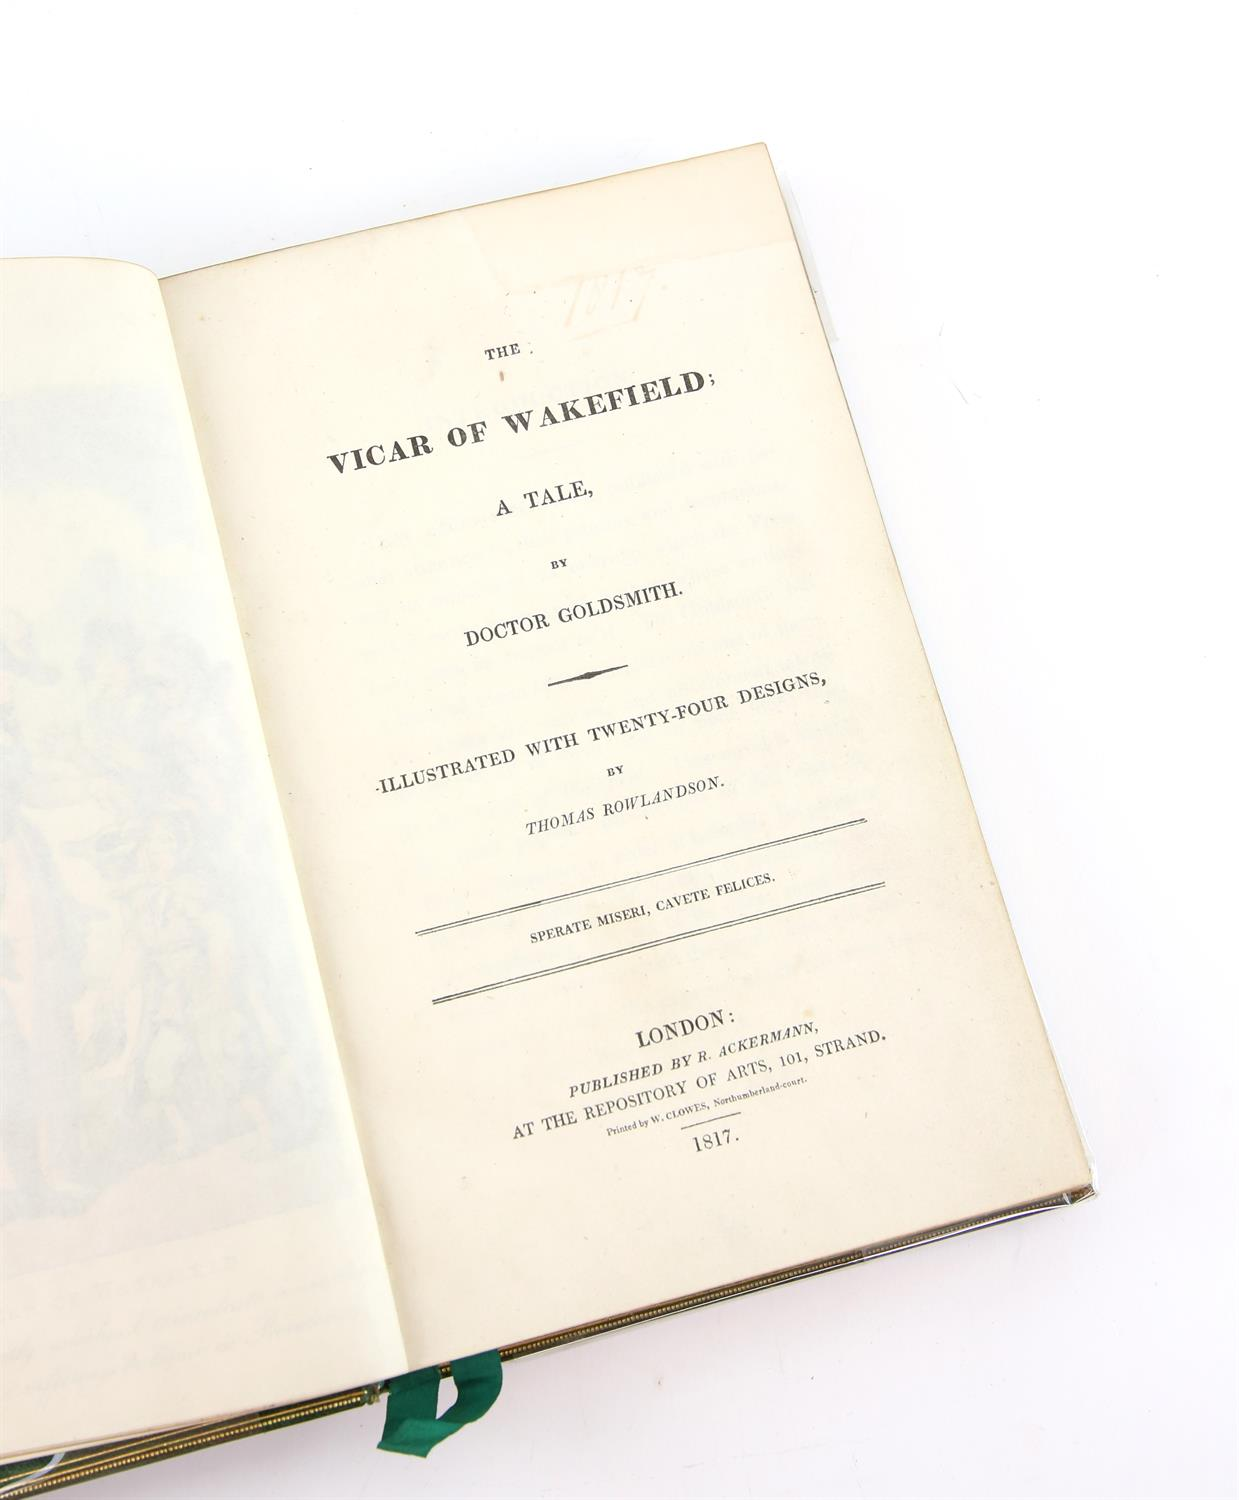 The Vicar of Wakefield; A Tale By Dr. Goldsmith, illustrated by Thomas Rowlandson, published by R. - Image 3 of 5